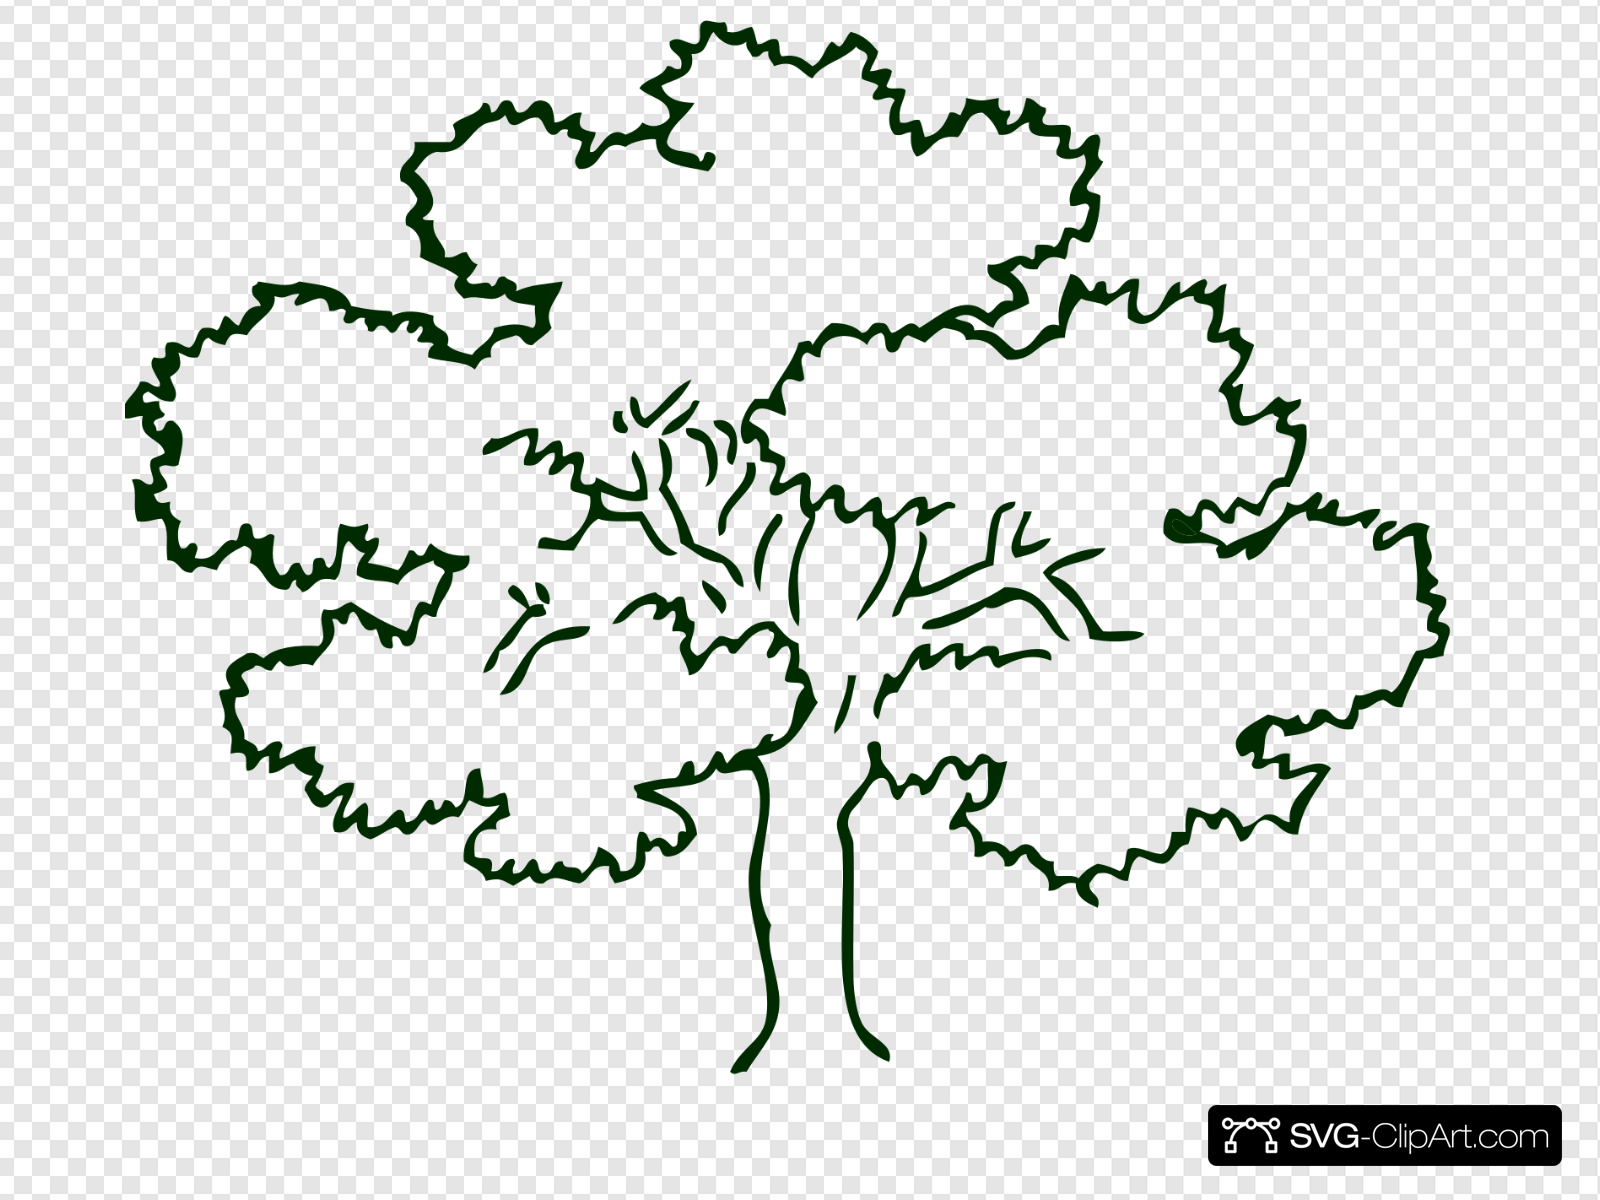 Business Card Tree Clip art, Icon and SVG.